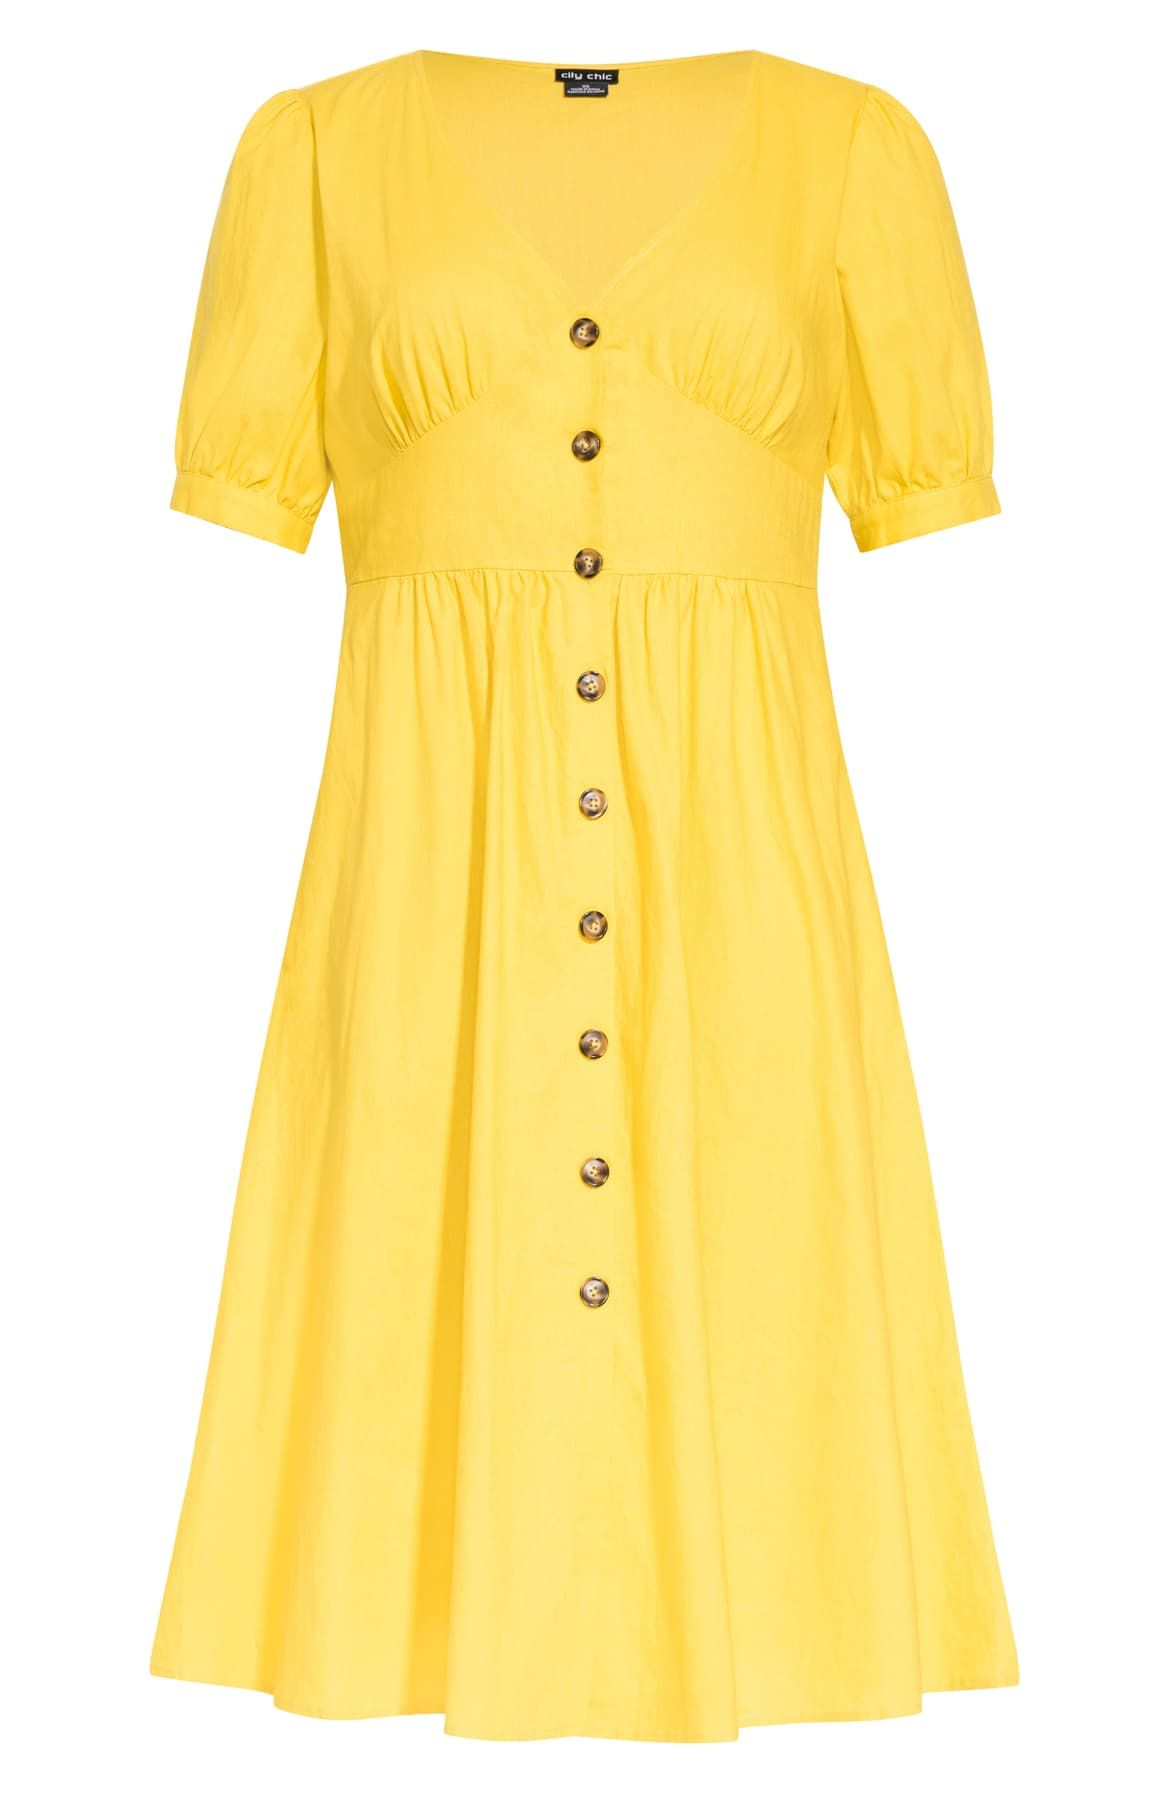 Pin By Yllai On Plus Everyday Casual Plus Size Outfits Cotton Dresses Dresses [ 1794 x 1170 Pixel ]